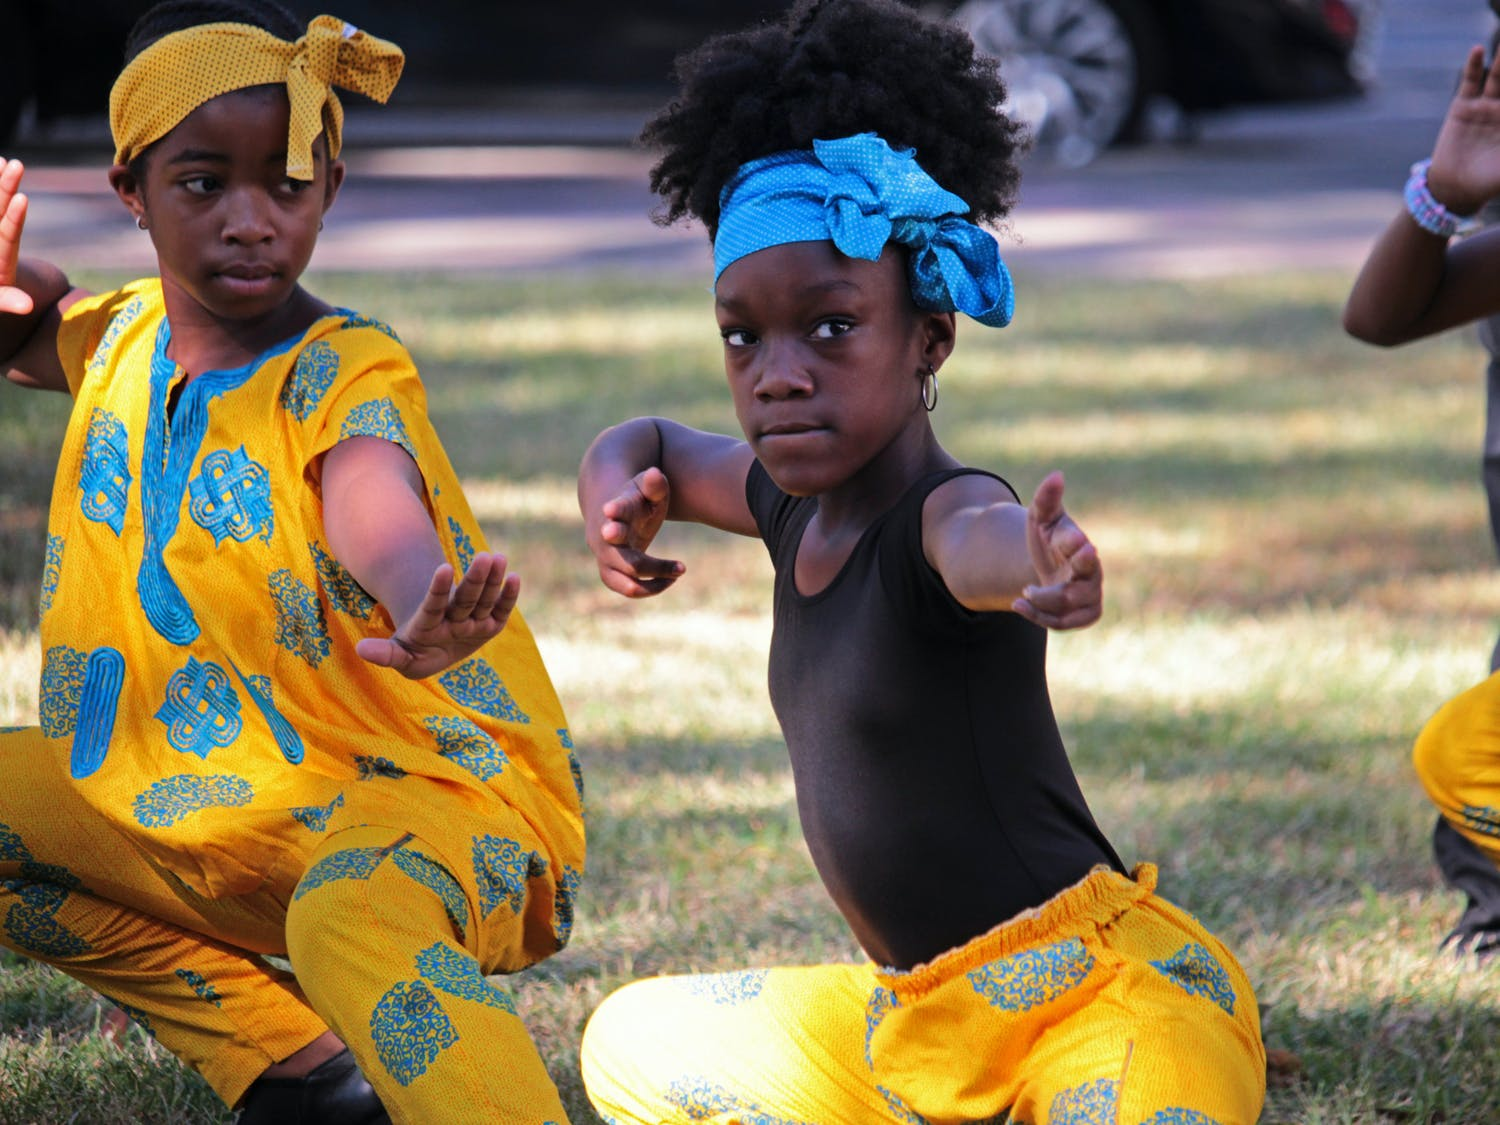 Laila Stanley (center) and her Caring and Sharing Learning School classmates perform a dance at the unveiling of a historical marker at the Alachua County Administration Building on Saturday, Oct. 23, 2021.